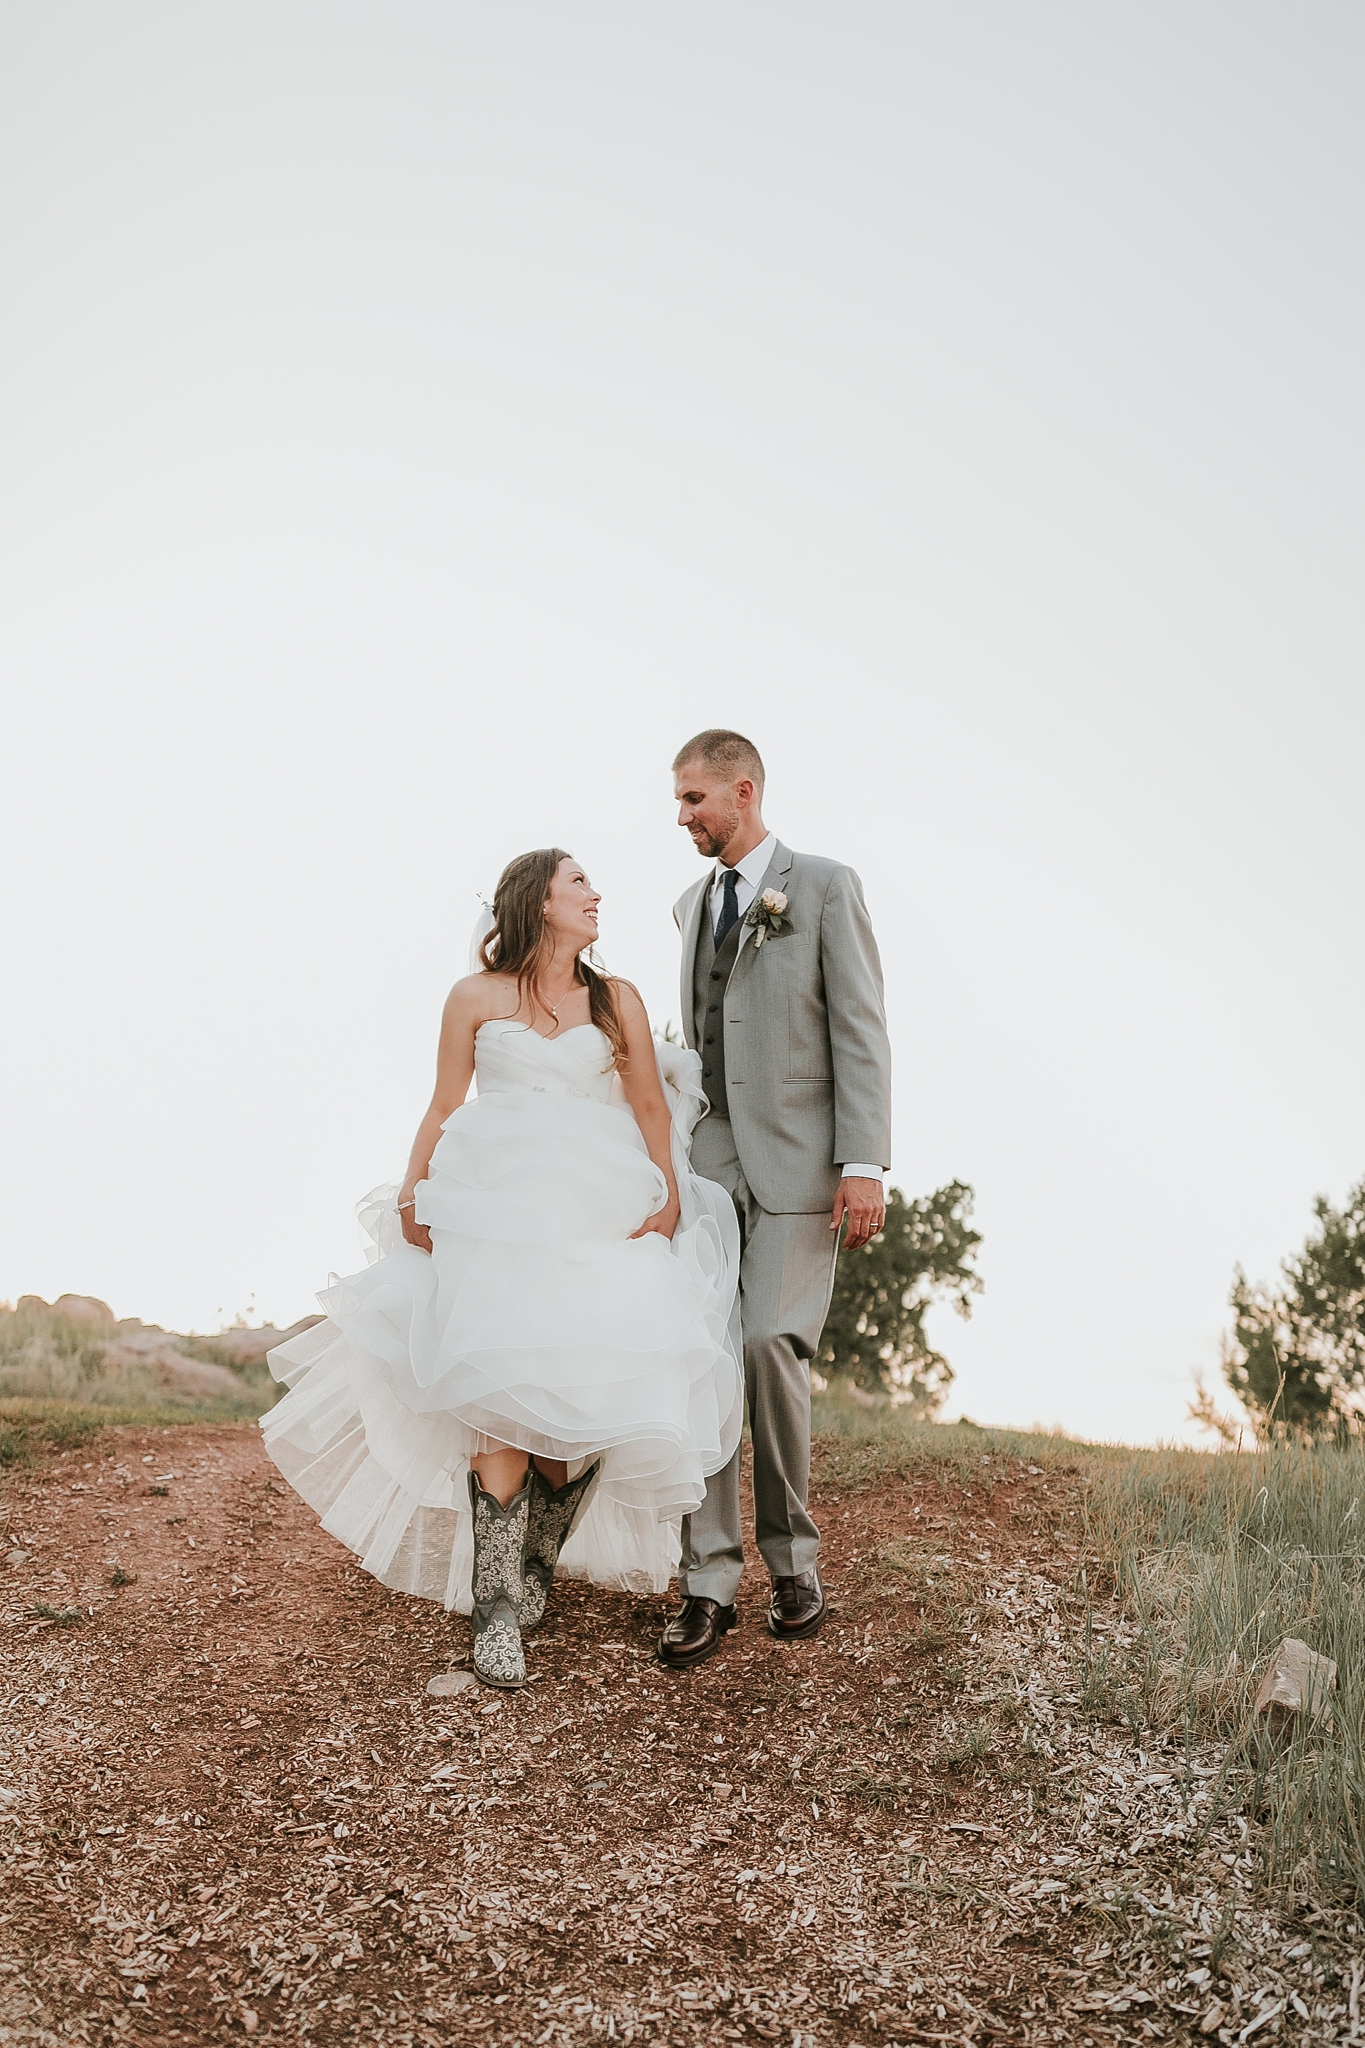 Alicia+lucia+photography+-+albuquerque+wedding+photographer+-+santa+fe+wedding+photography+-+new+mexico+wedding+photographer+-+new+mexico+wedding+-+new+mexico+wedding+-+colorado+wedding+-+bridal+shoes+-+bridal+inspo_0021.jpg